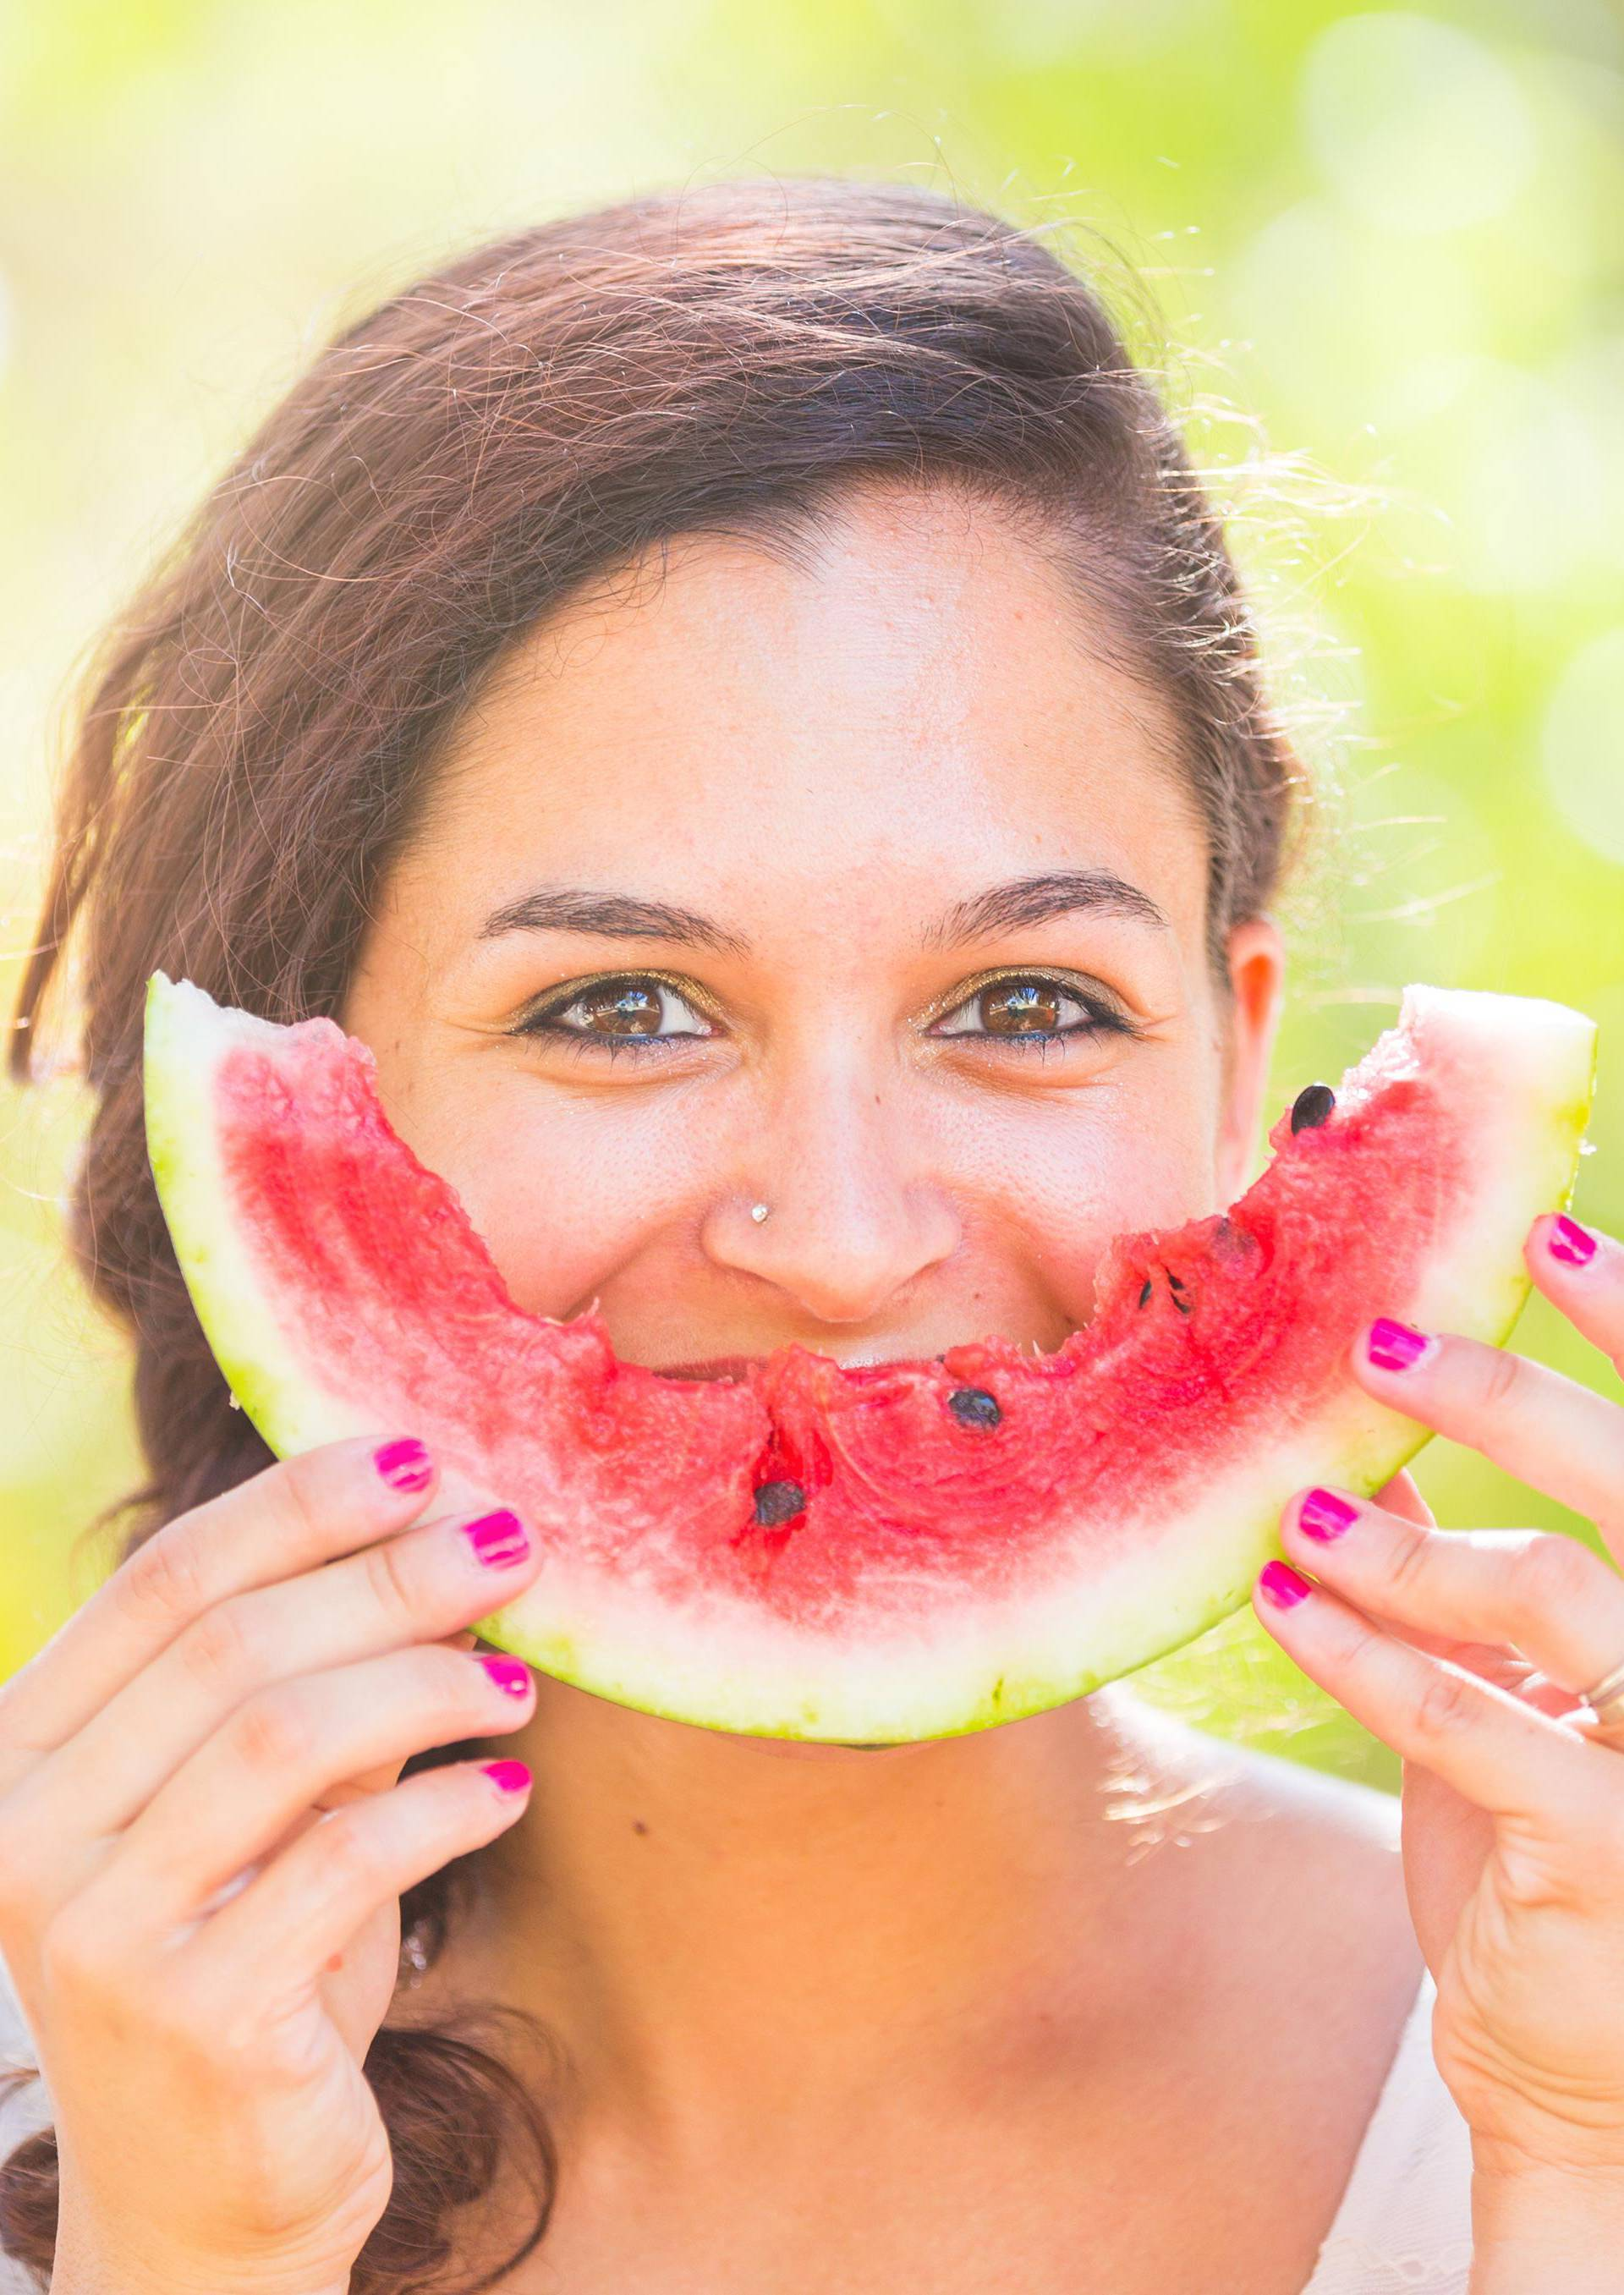 Beautiful young woman at park eating a slice of watermelon